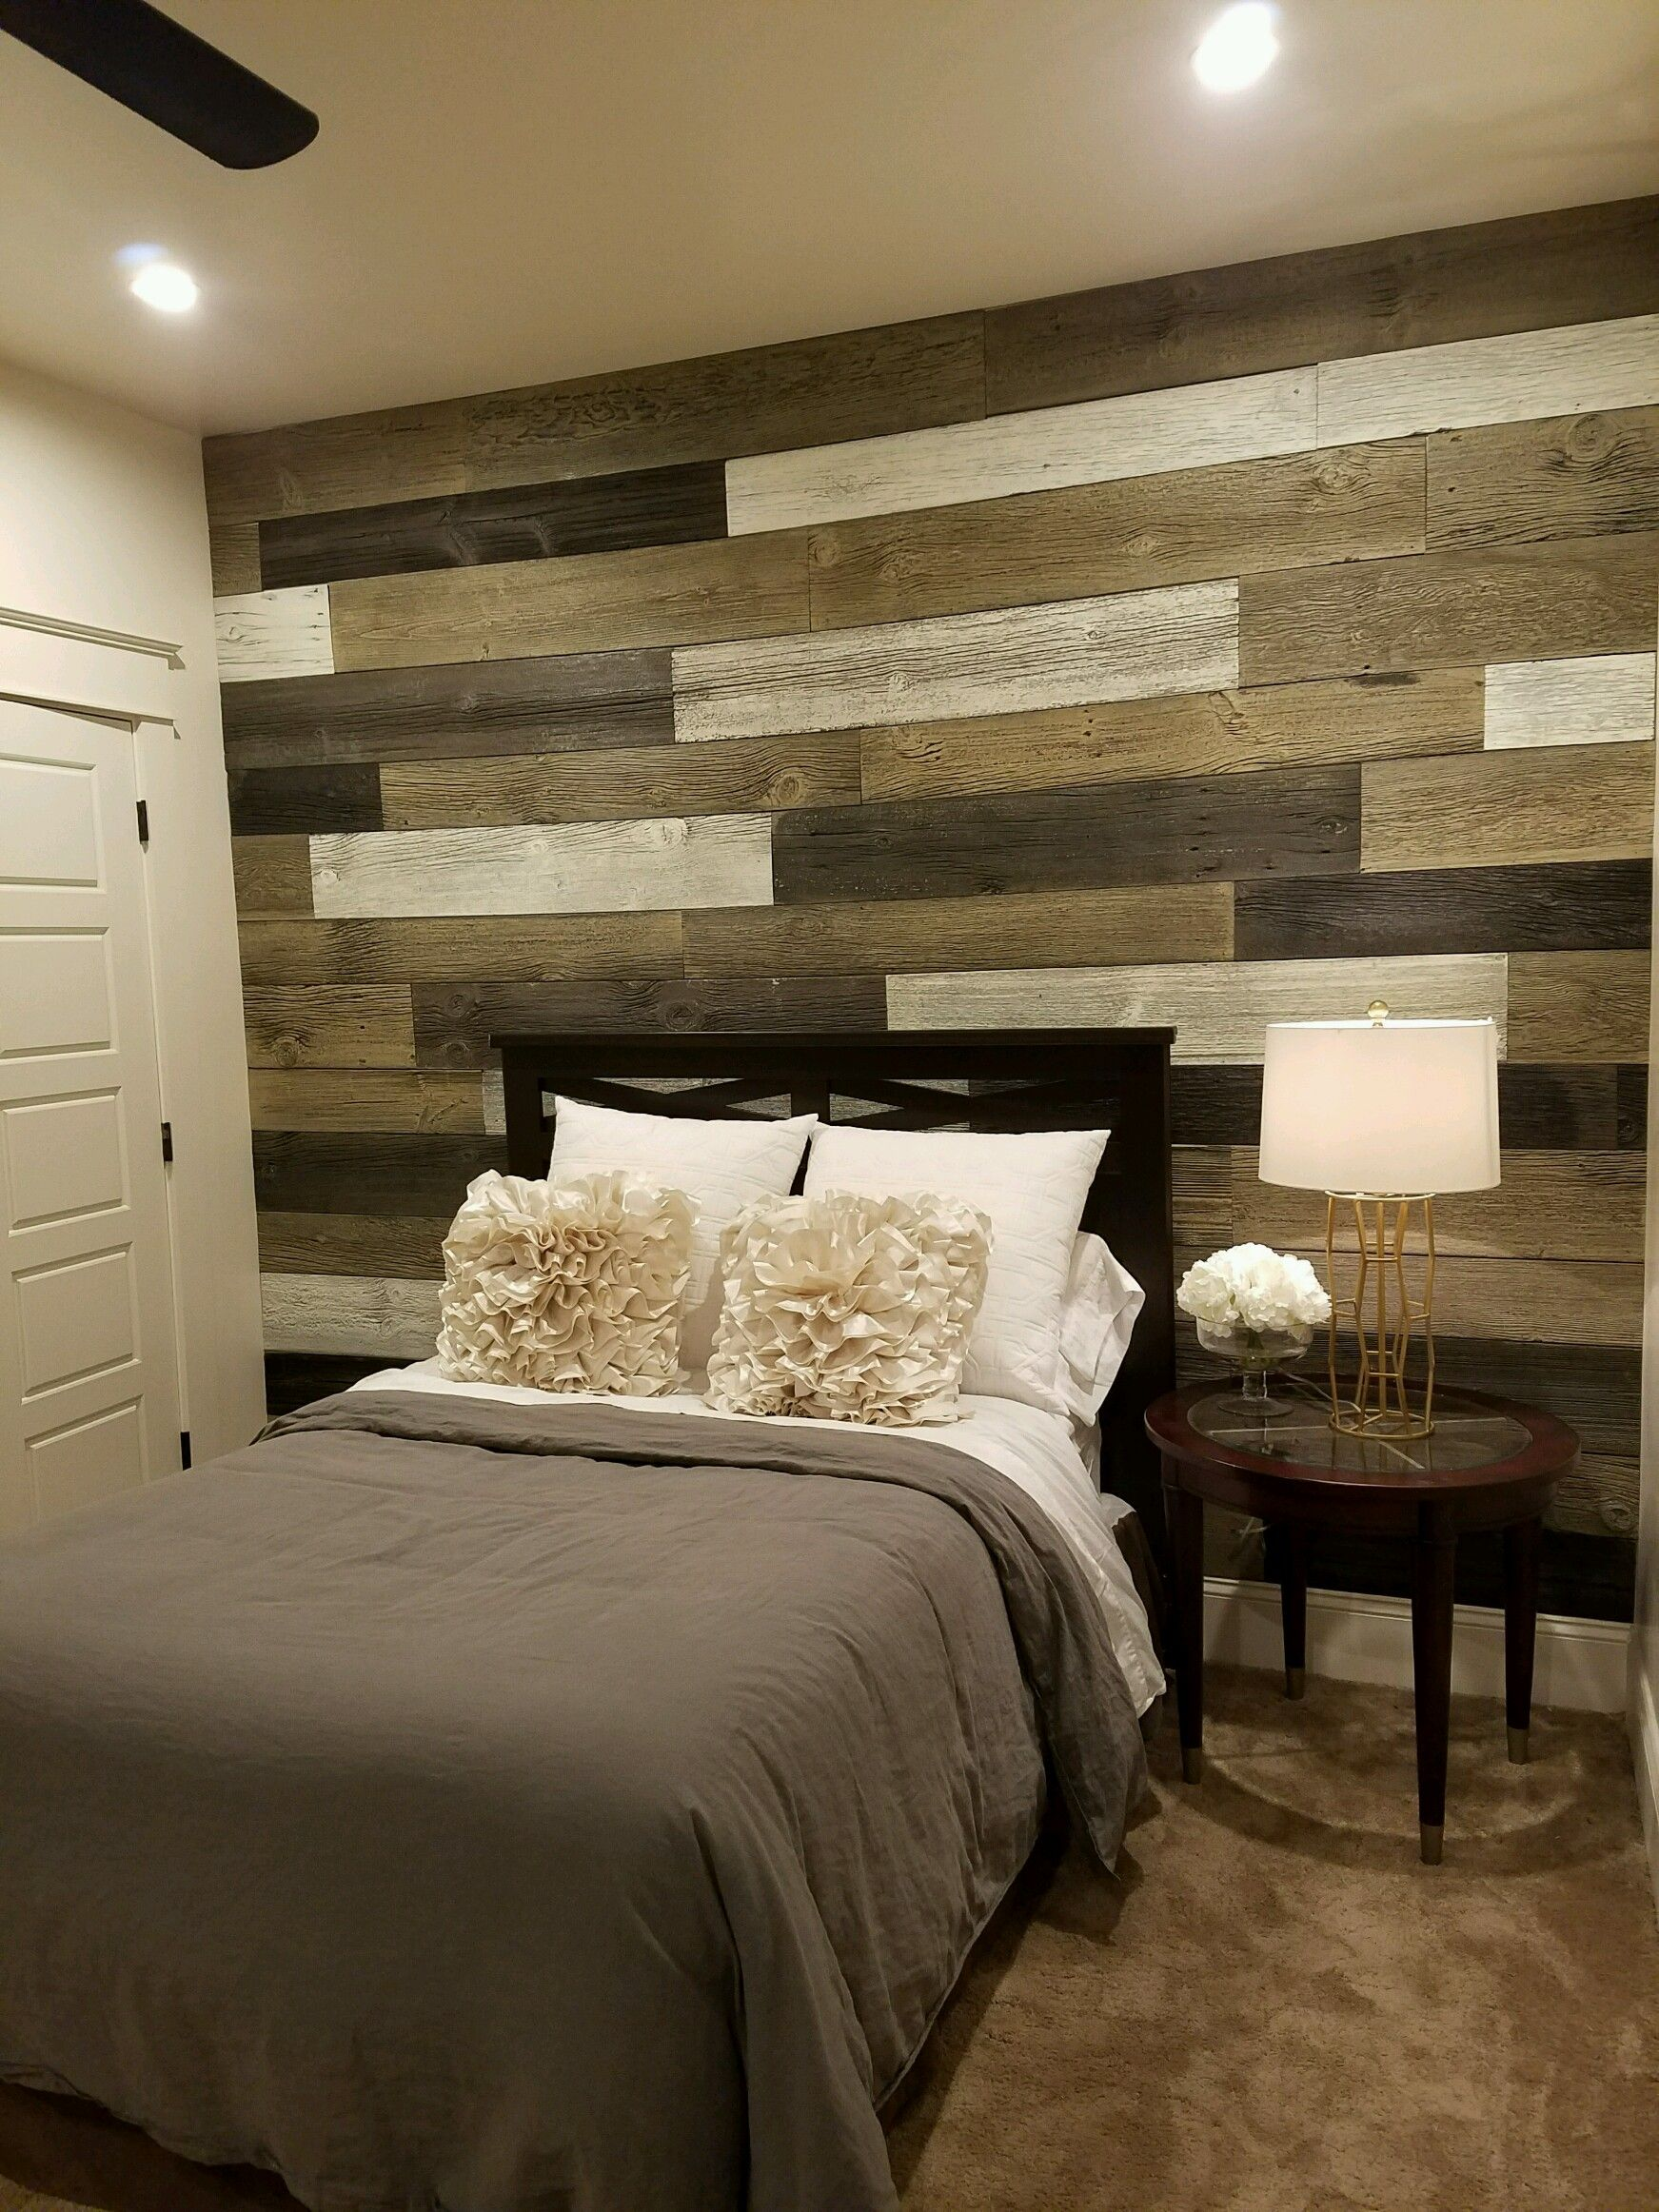 Meuble Accent Base De Lit Bedroom Wood Accent Wall Using 3 Different Faux Logic Designs